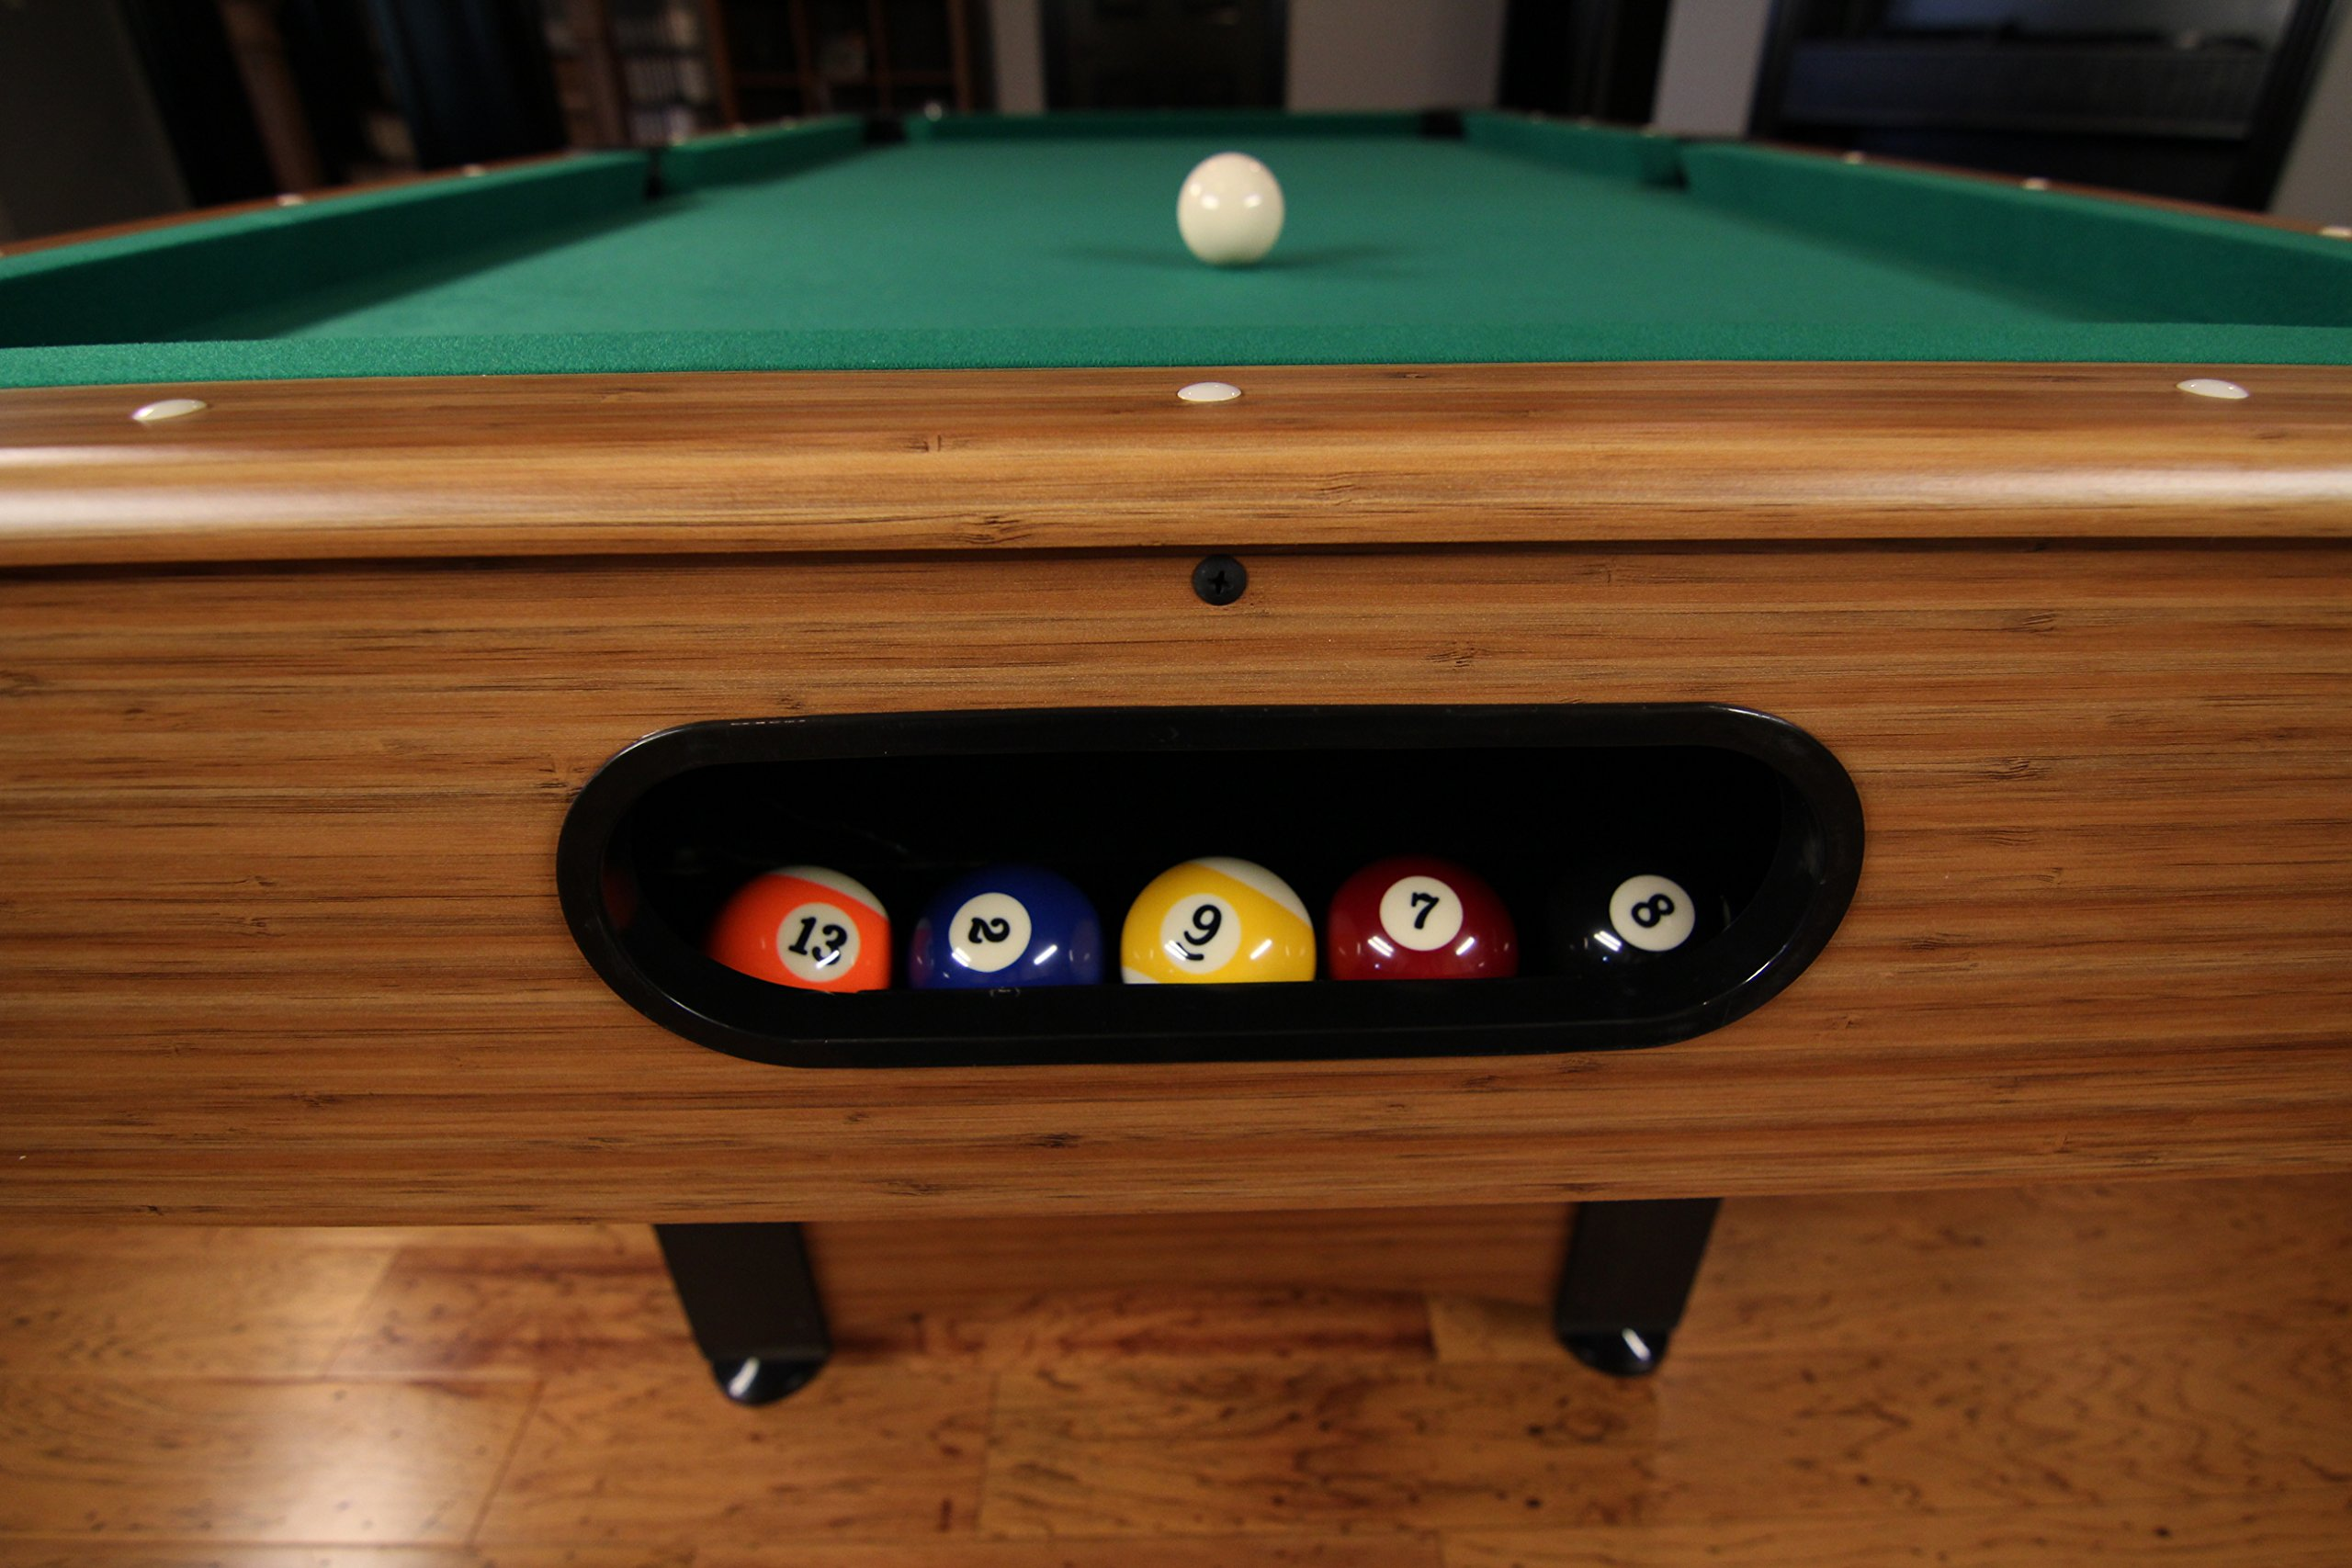 Mizerak Dynasty Space Saver 6.5' Billiard Table with Compact Design to Fit in Smaller Rooms, Leg Levelers for Perfectly Even Playing Surface, Double-sealed MDF Play-bed for Consistent Roll and Automatic Ball Return for Quick Game Reset by Mizerak (Image #4)